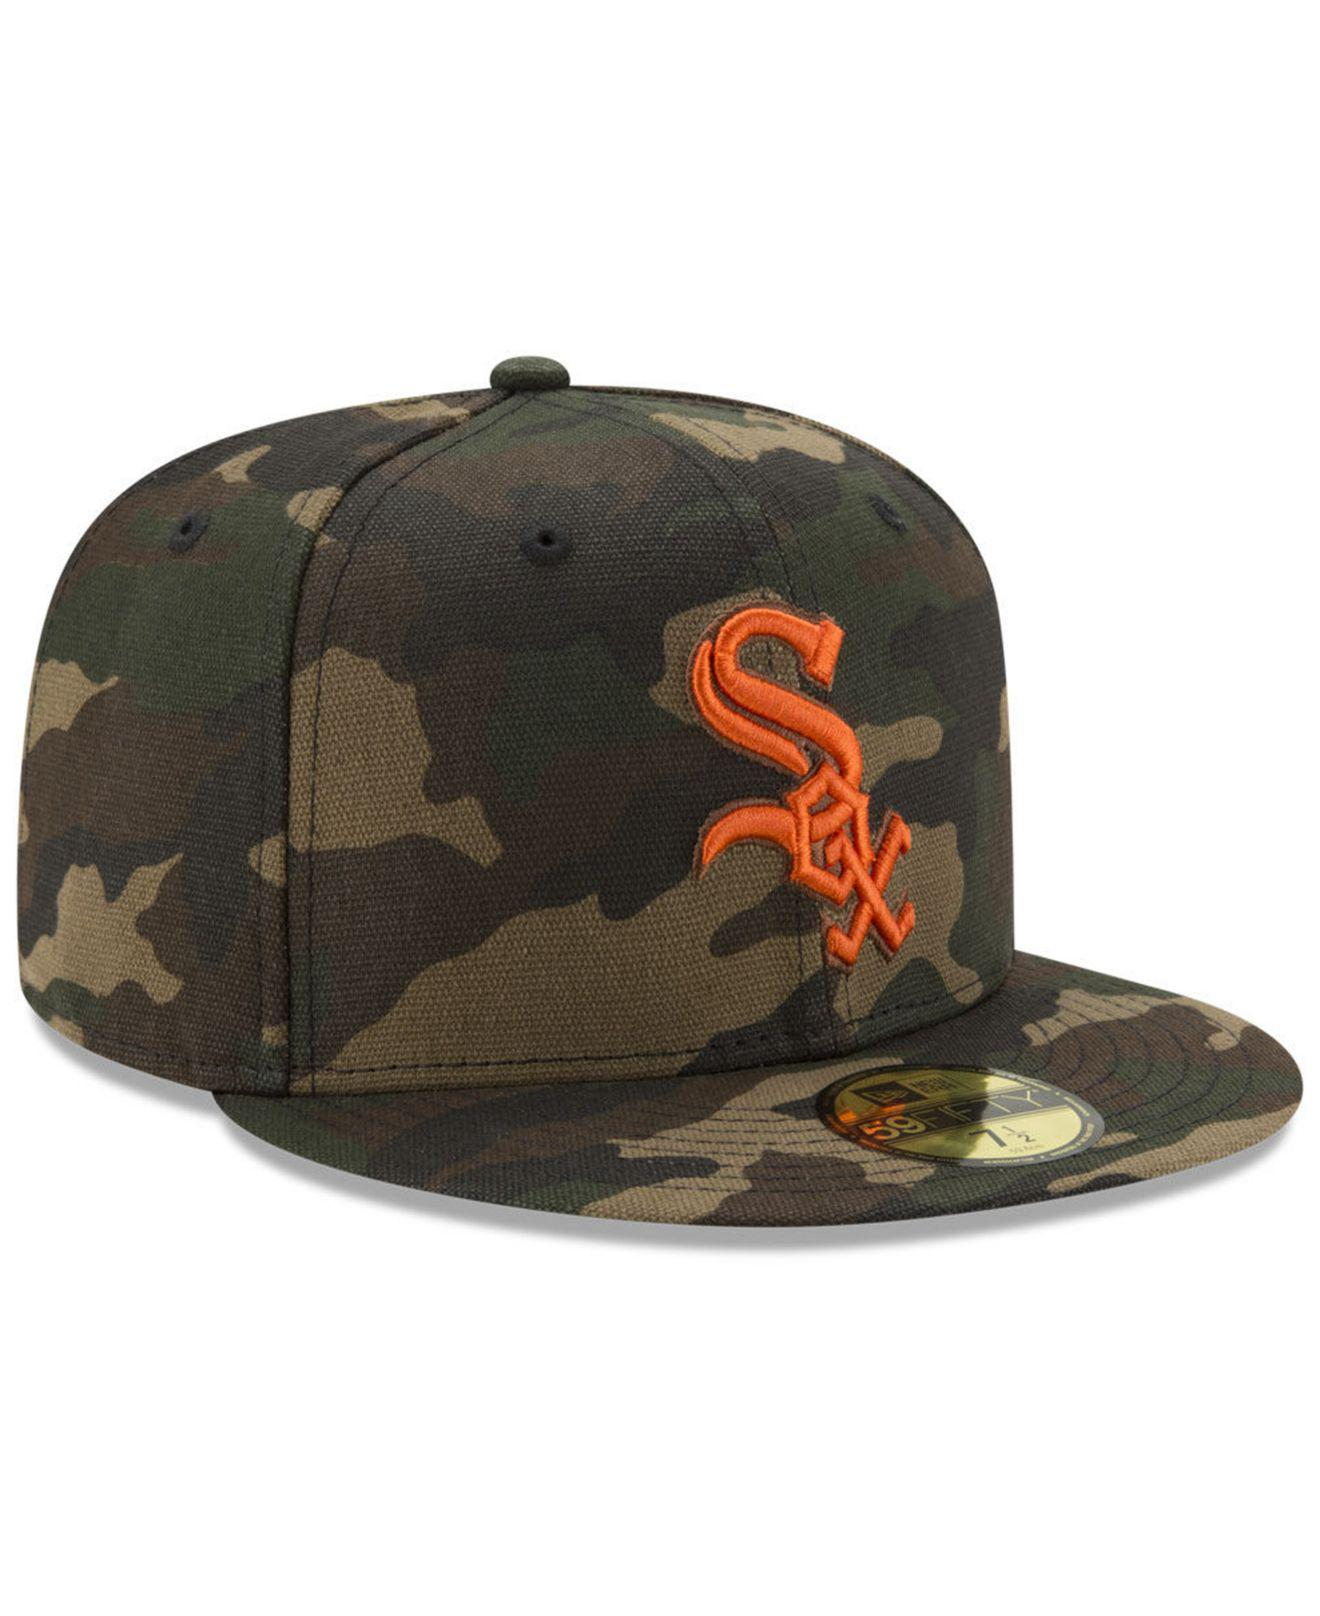 bd05d6358c3 Lyst - KTZ Chicago White Sox Camo On Canvas 59fifty Cap in Green for Men